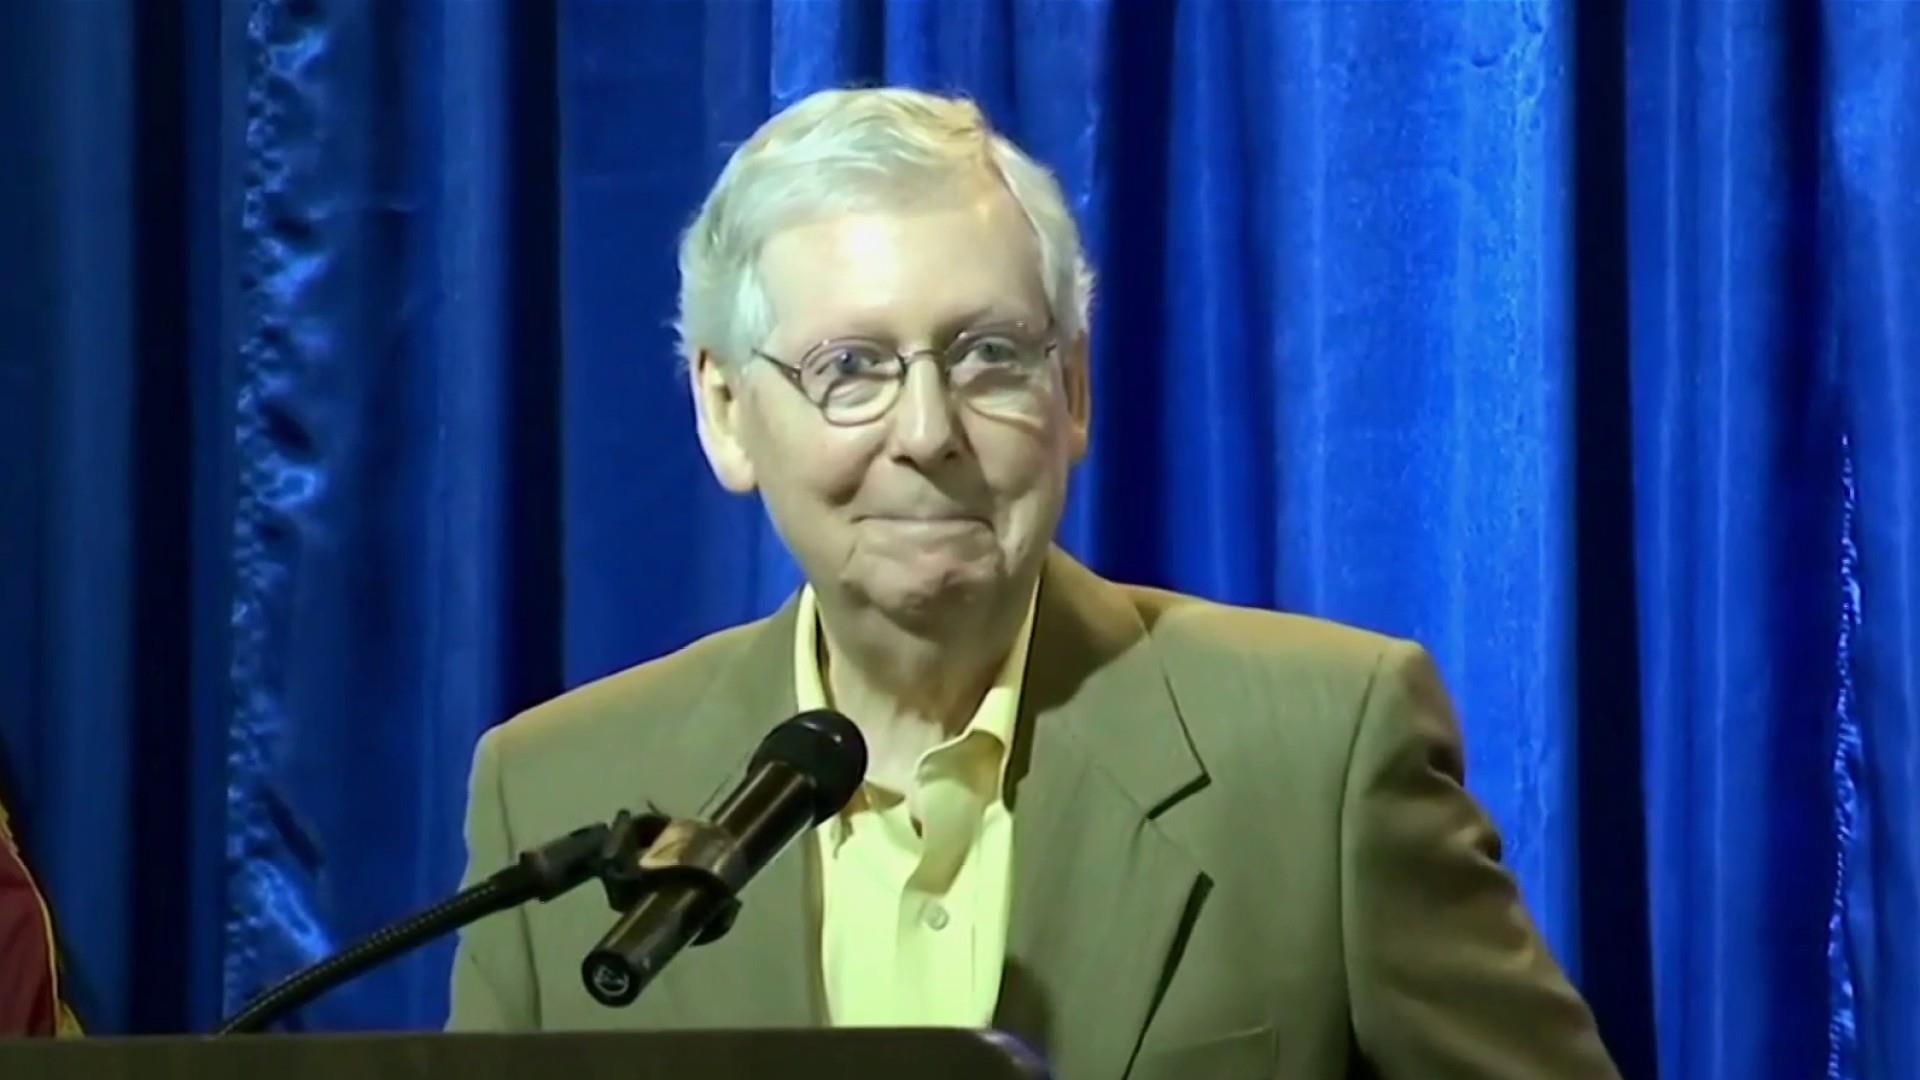 Mitch McConnell says he'd fill Supreme Court vacancy in 2020